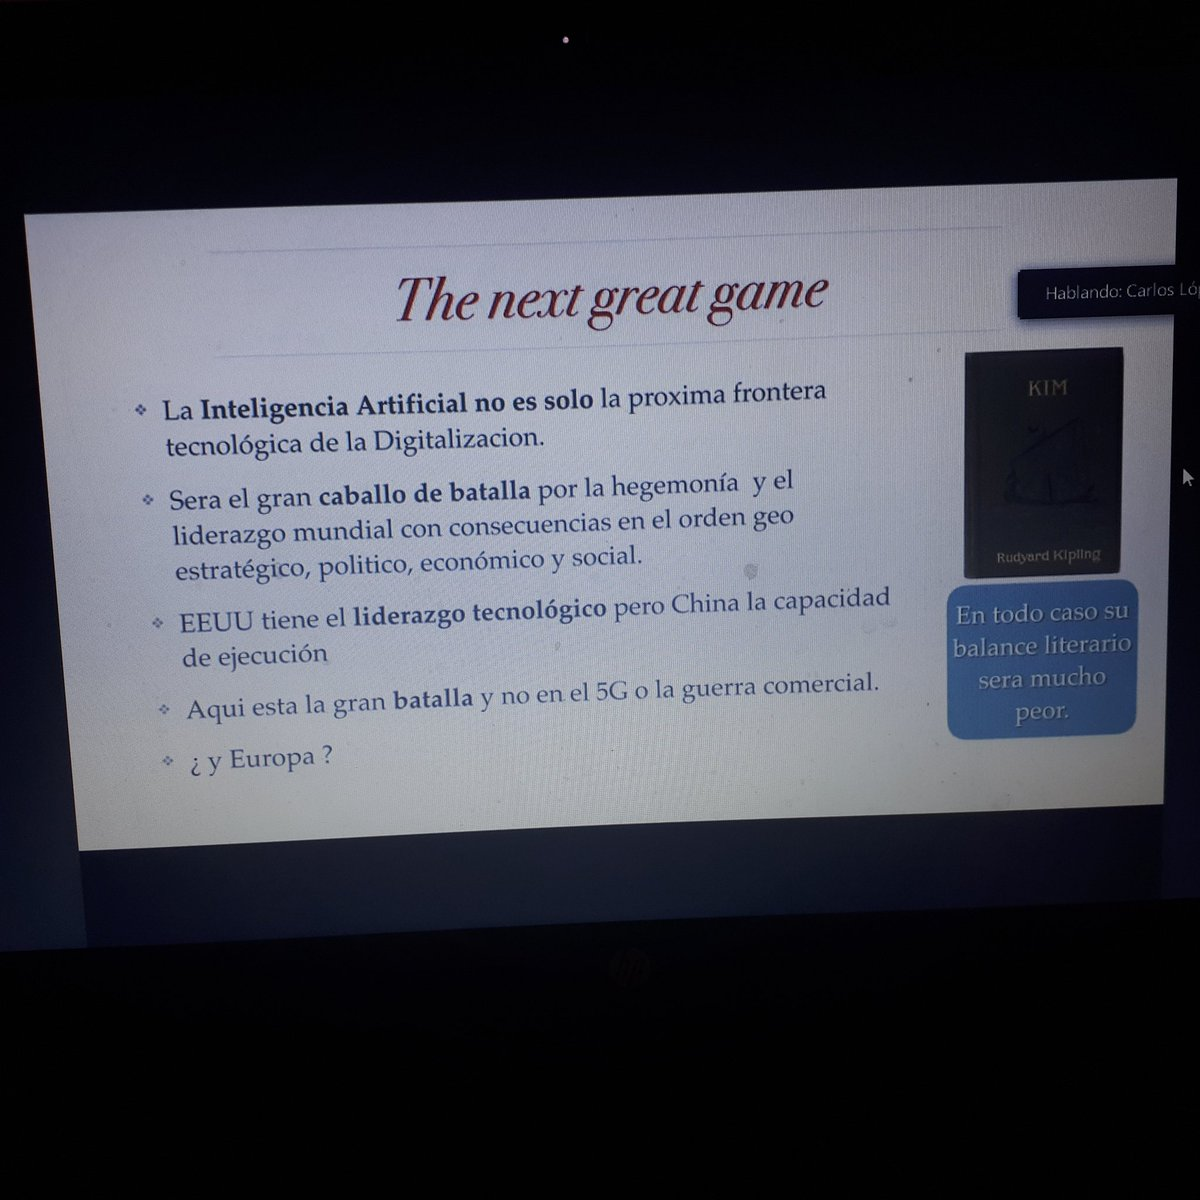 @clopezbl President #DigitalizationCommittee @camarascomercio,  new President #DigitalEconomy Commission @ICC and VicePresident @ICCSpain gives #ZOOM lecture on #TheNextGreatGame between #USA #China and #EU to be played in #ArtificialIntelligence together with #QuanticComputers https://t.co/urOb2rO0te